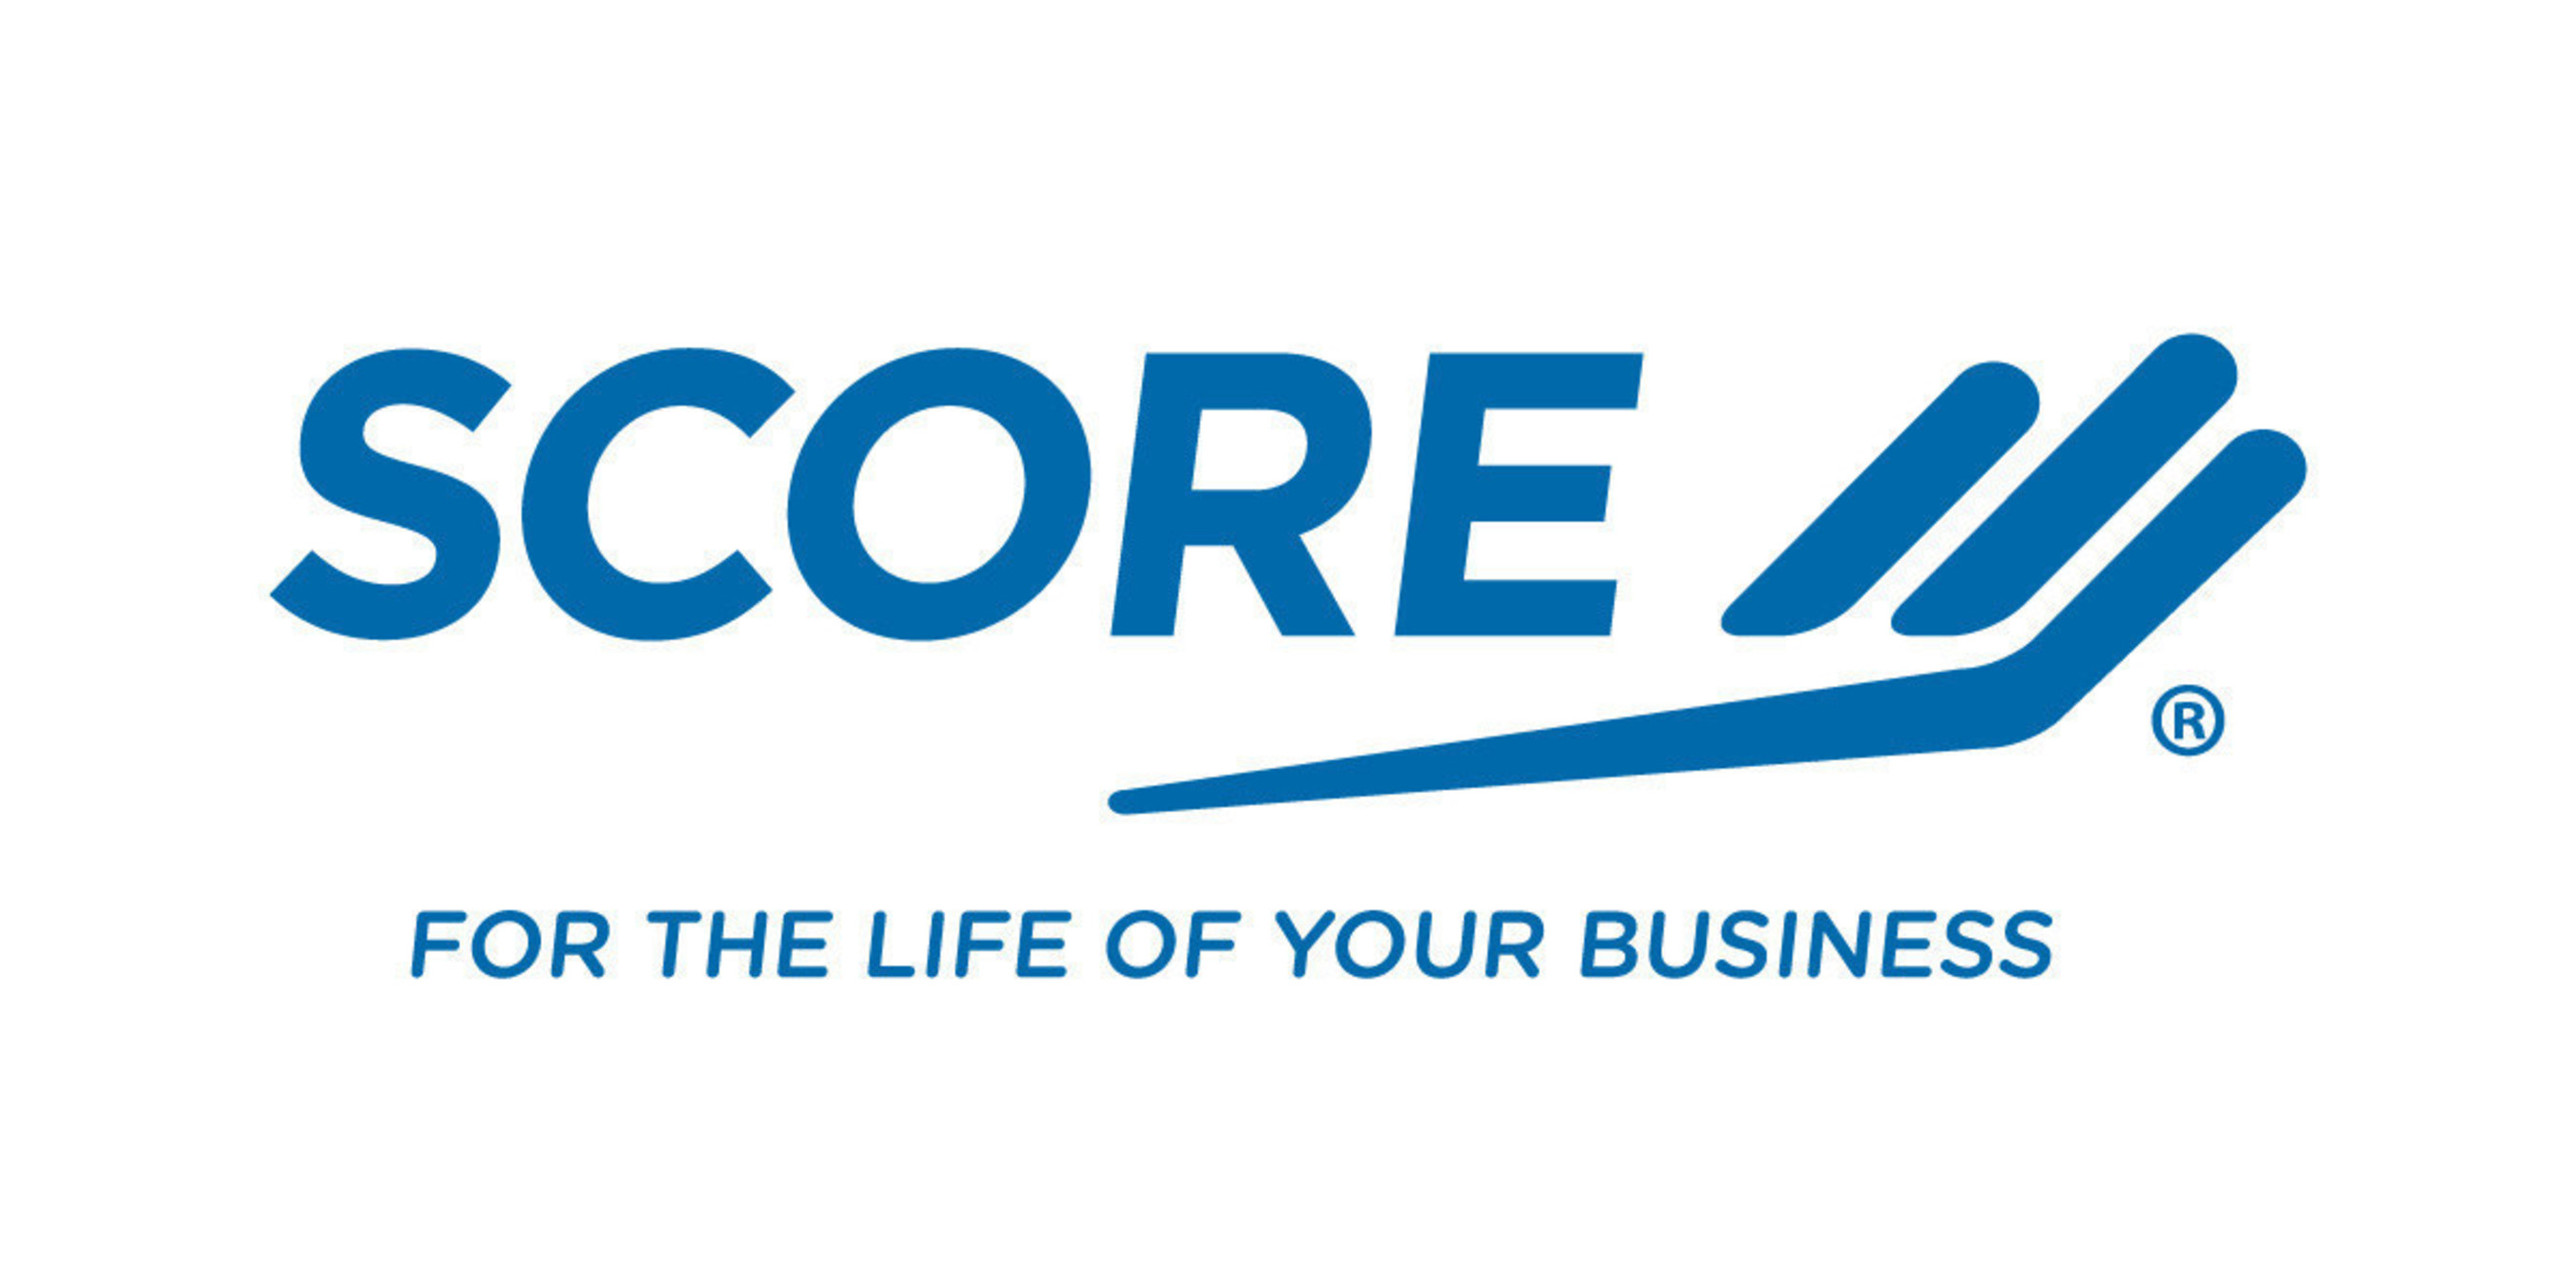 SCORE, a national nonprofit dedicated to mentoring small business owners, has received a grant from the Ewing Marion Kauffman Foundation to study the impact of video conferencing technology on mentoring. As the leading mentoring organization for small businesses, this project will help SCORE reach more small business clients through more convenient and engaging mentoring experiences.